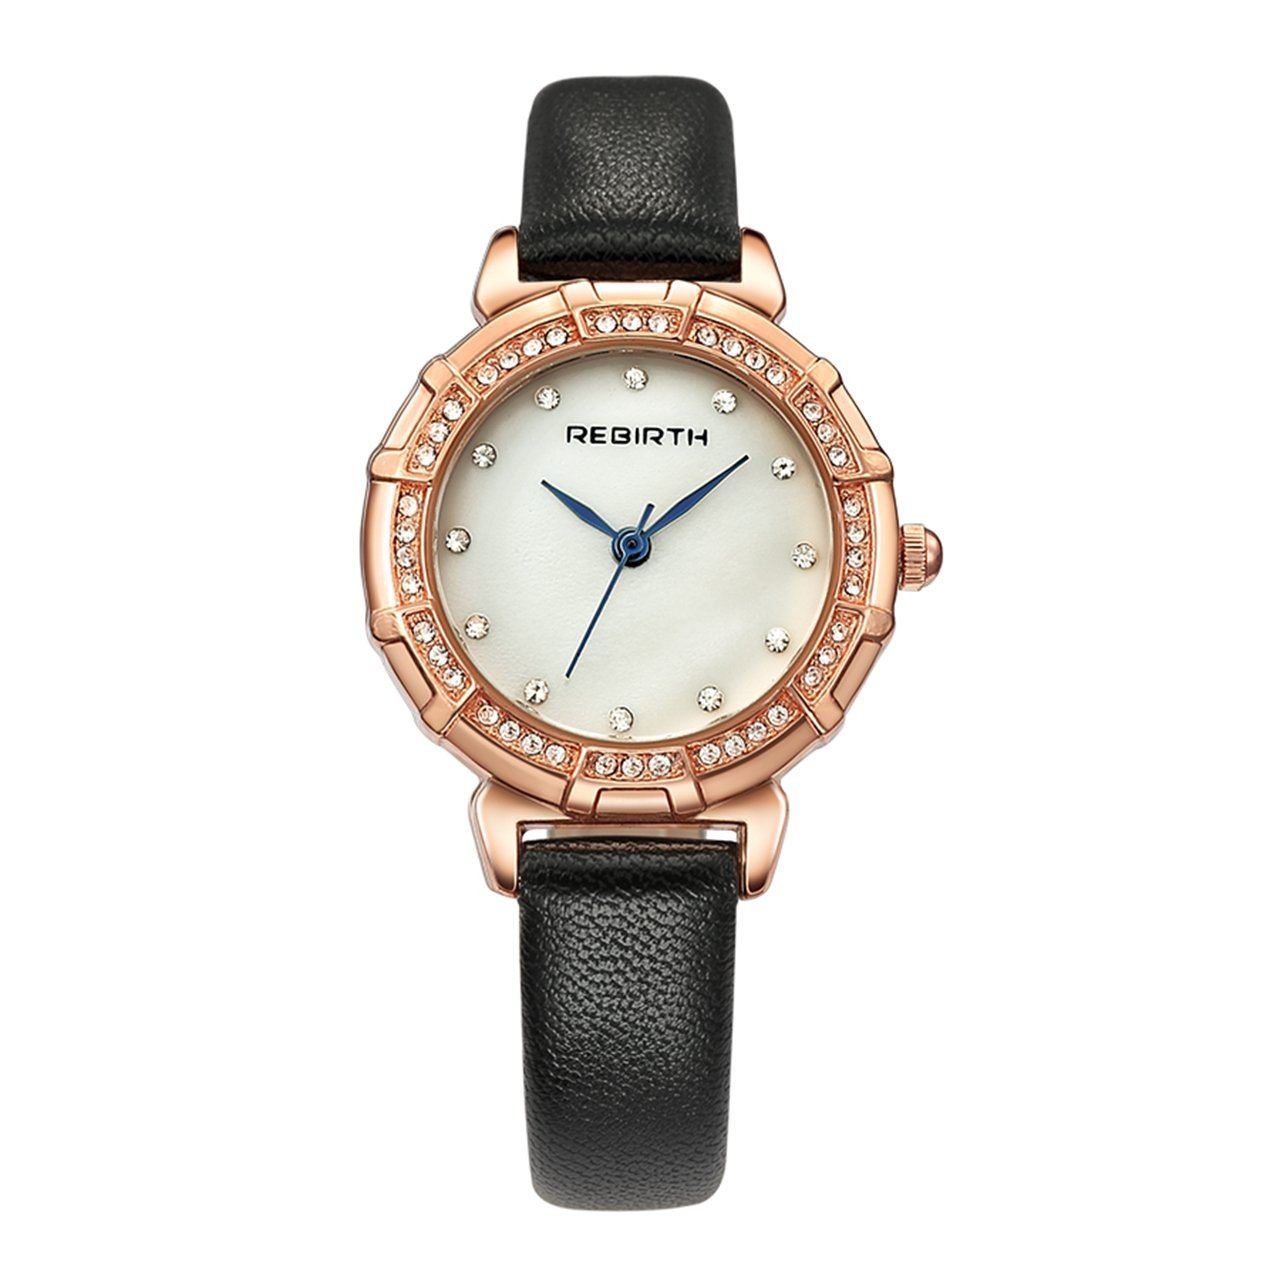 Top Plaza Womens Black Luxury Crystal Dress Watch - Analog Quartz PU Leather Crystal Shell Dial Crystal Accented Gold Alloy Case Daily Waterproof